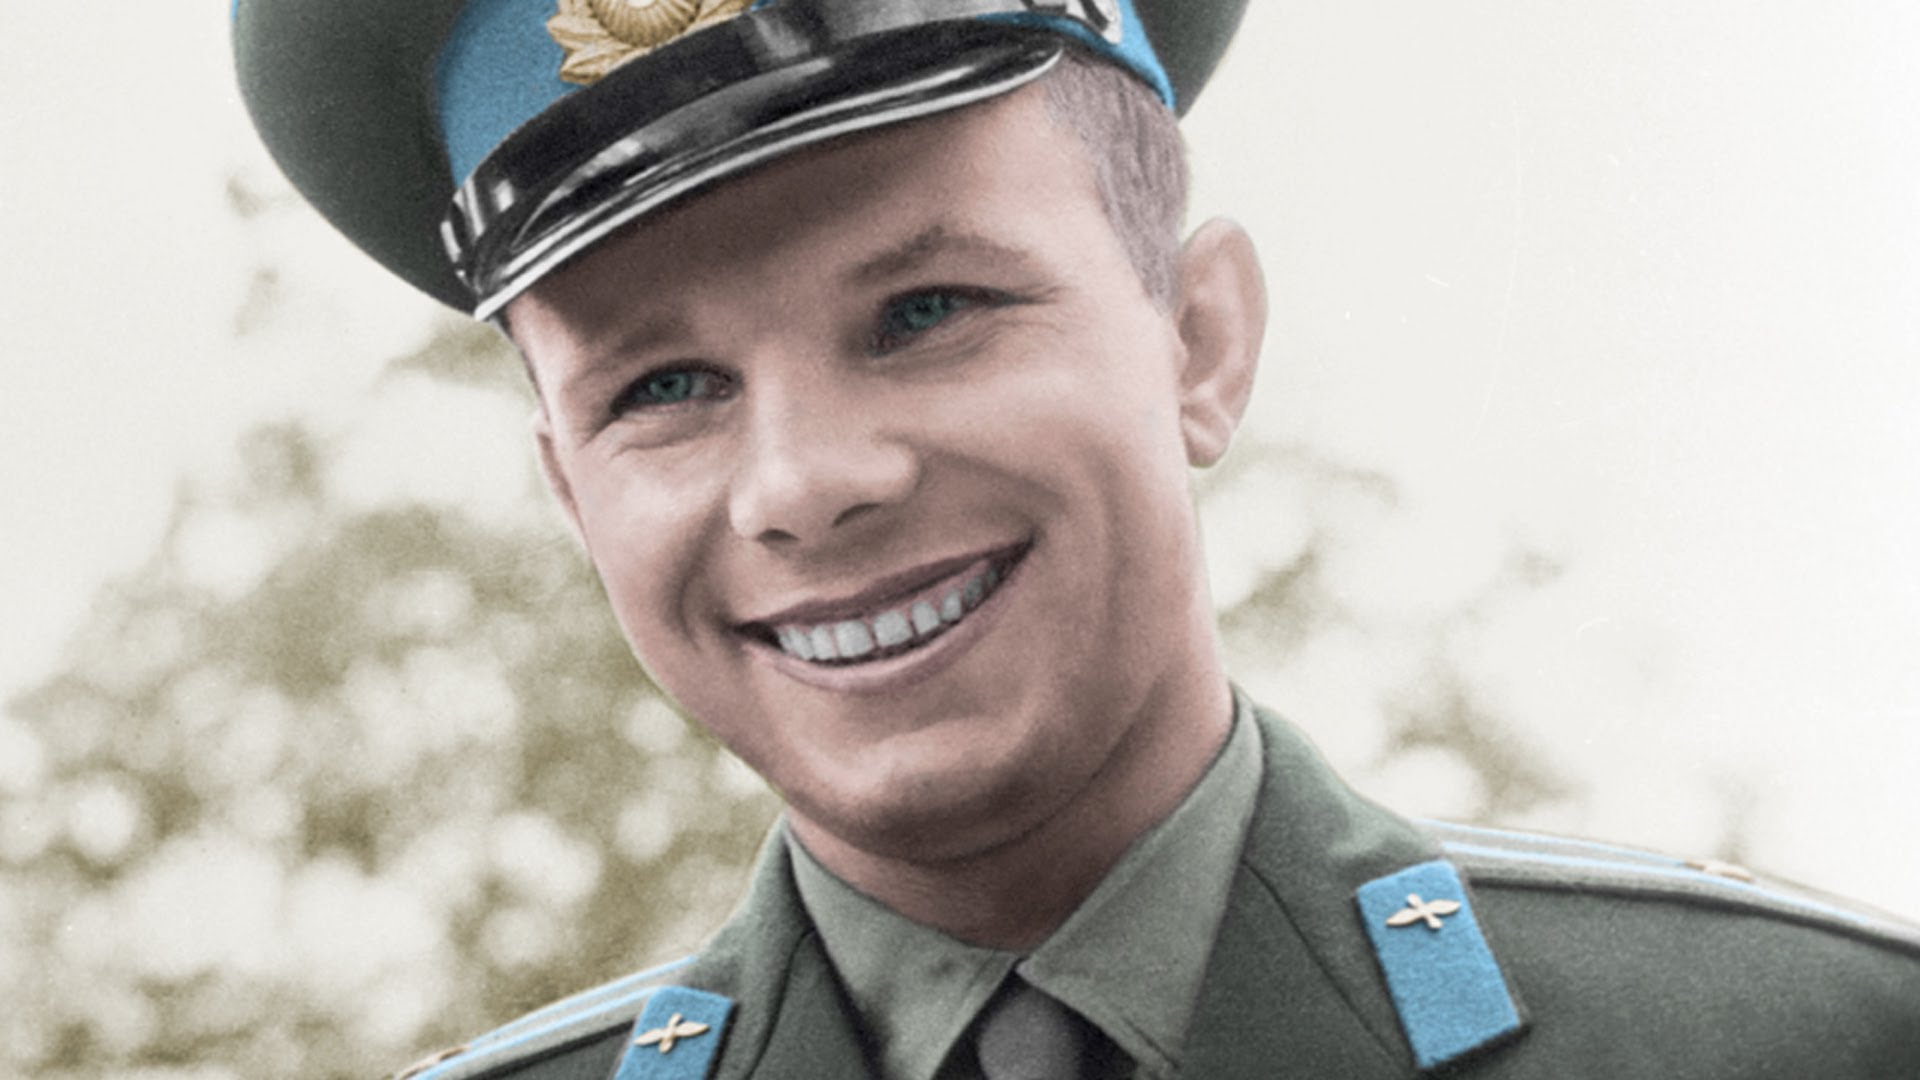 gagarin wallpaper - photo #17